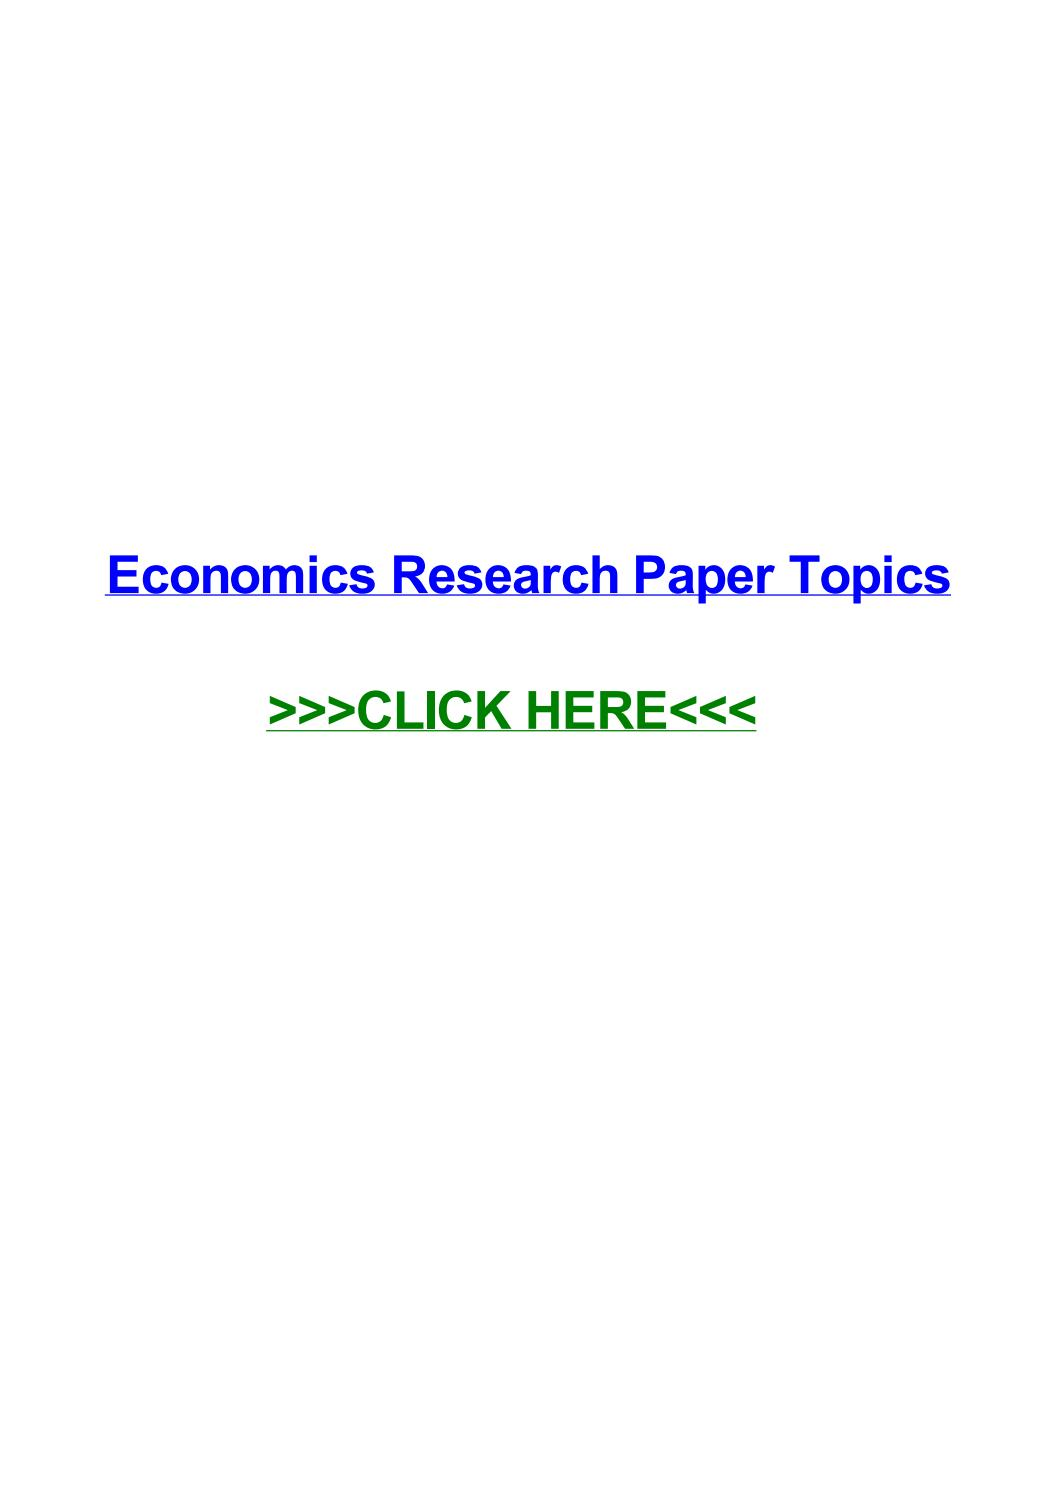 004 Research Paper Page 1 In Economics Stupendous Topics Finance Business International Full